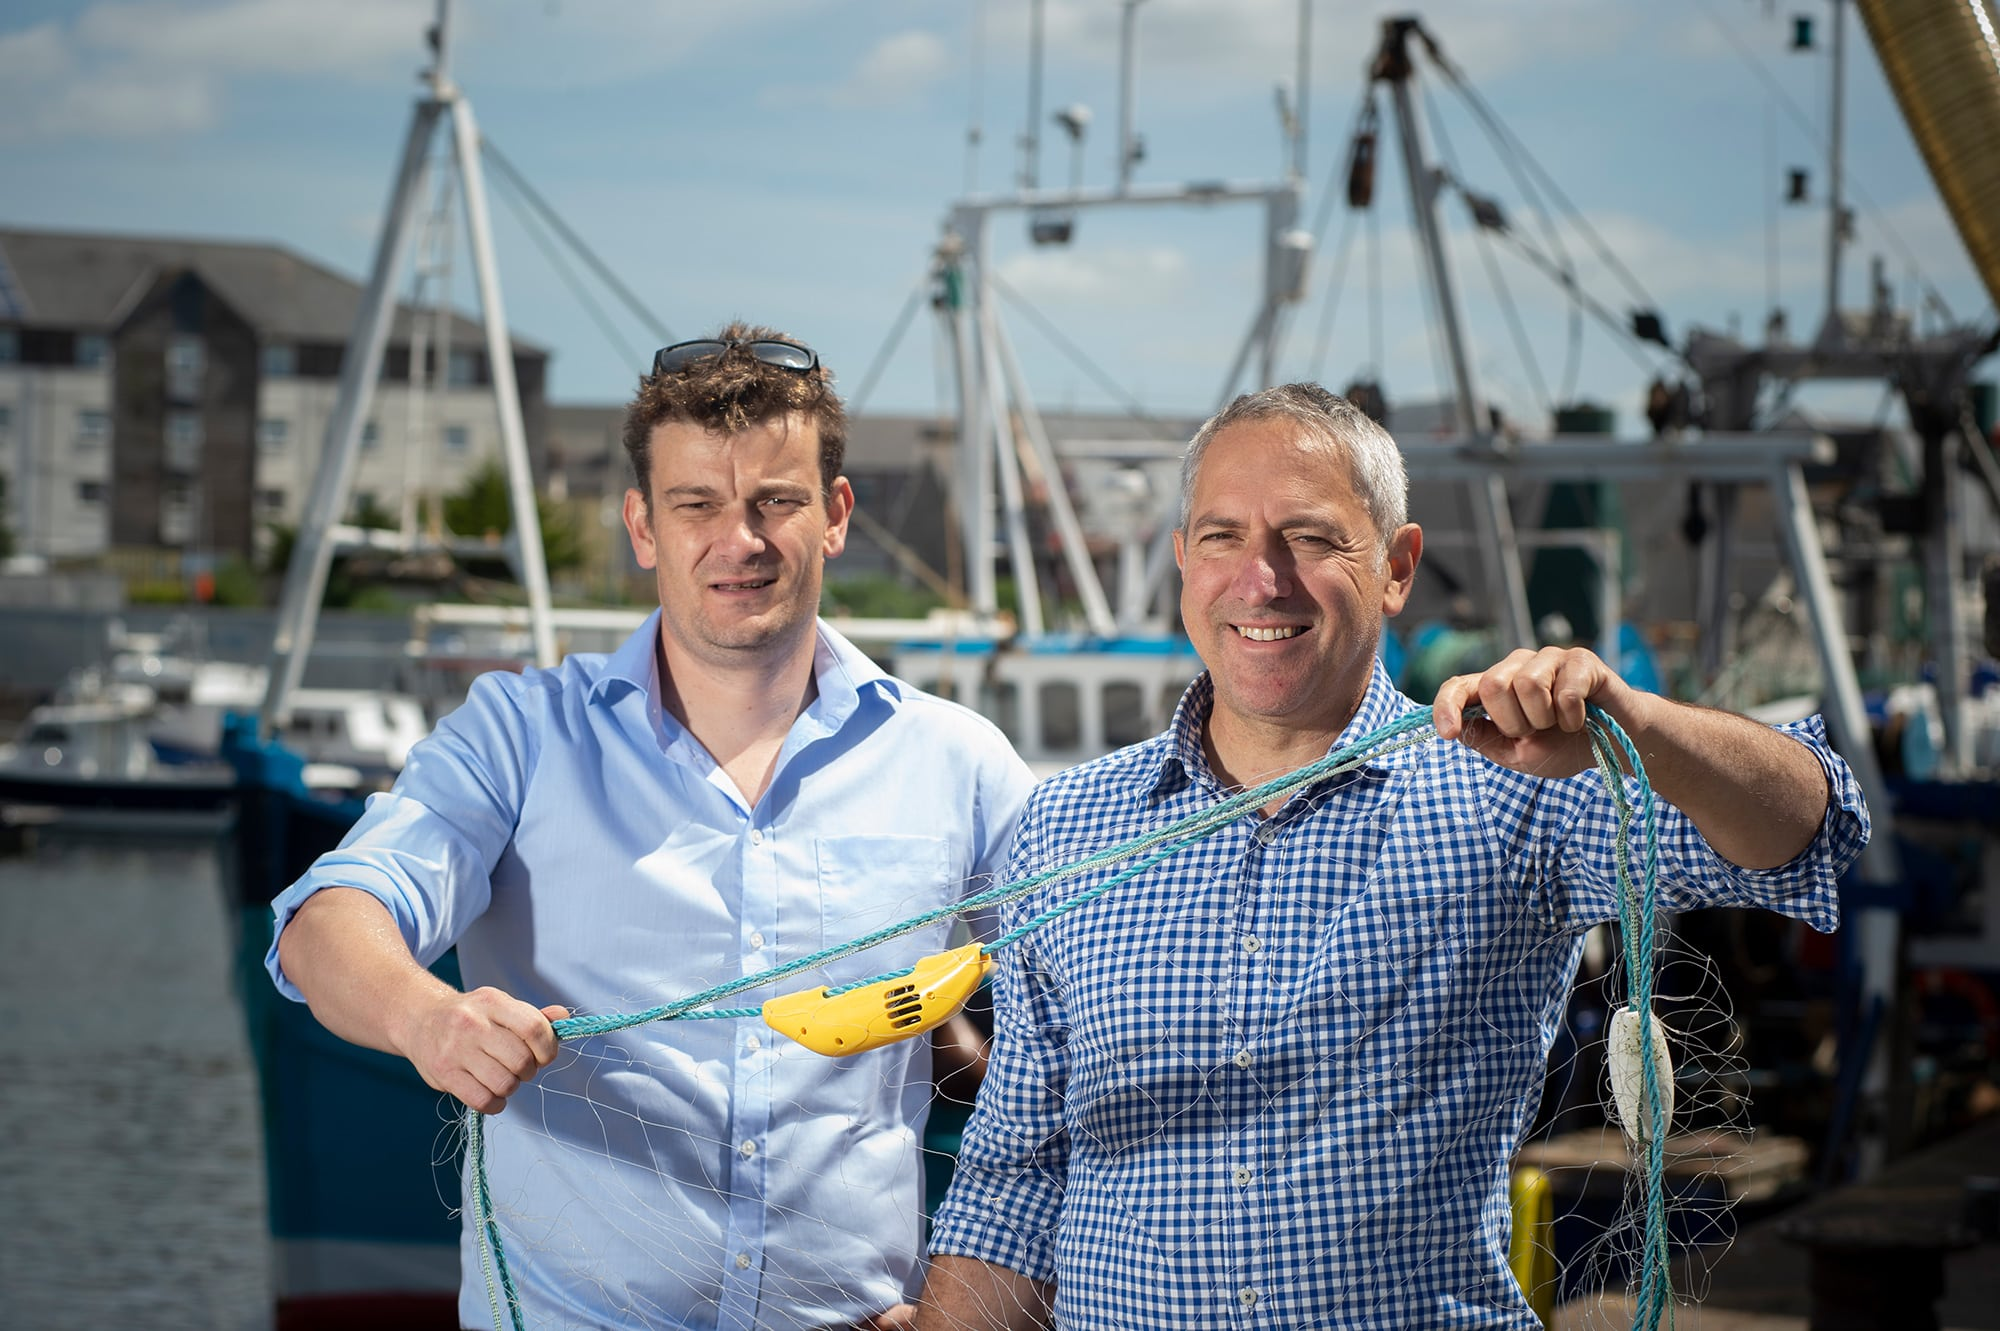 Teaming up with Fishtek to reduce dolphin deaths in fishing gear